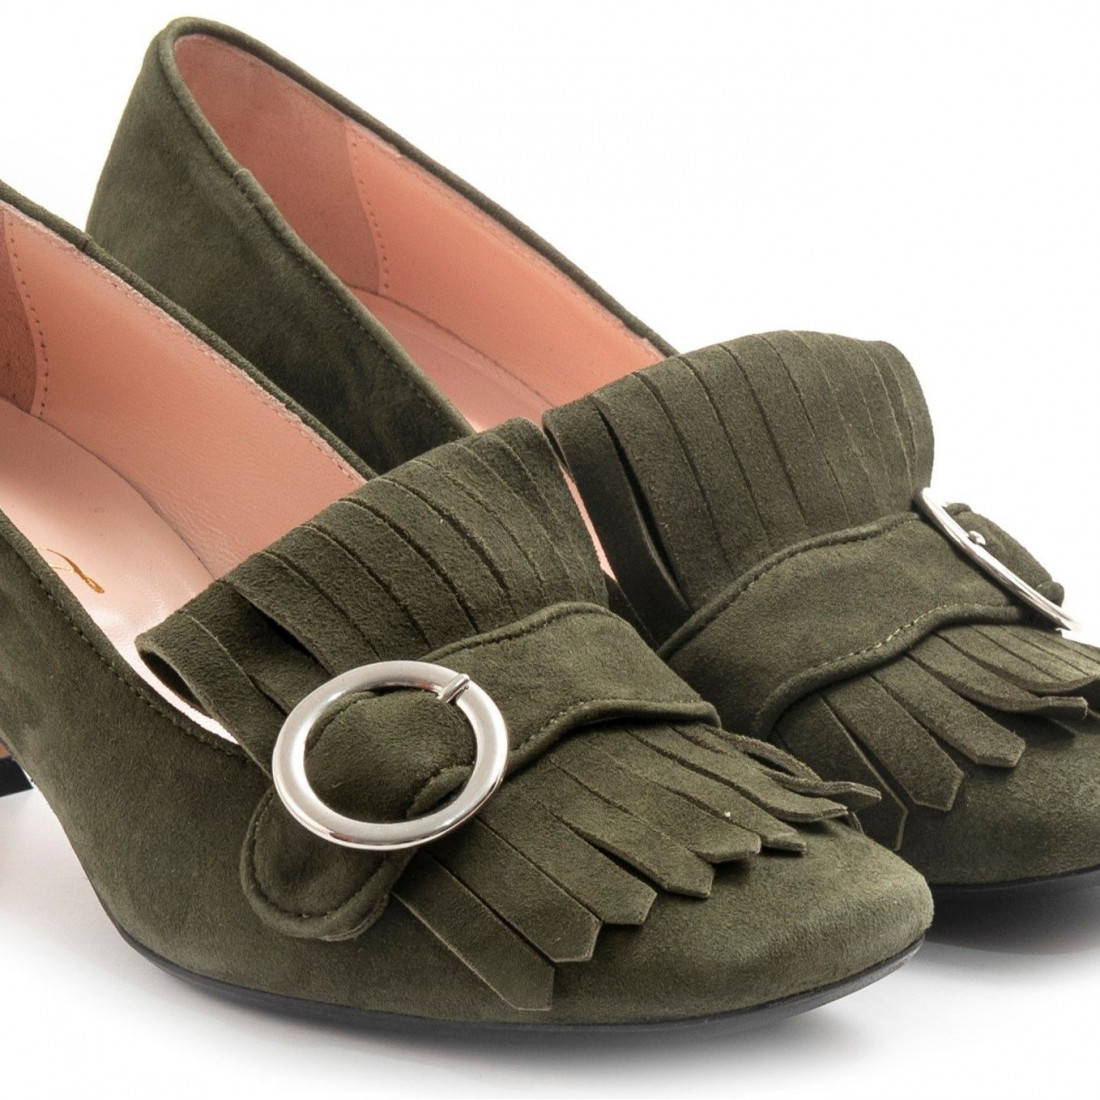 loafers woman anna f 1281camoscio verde mil 7912